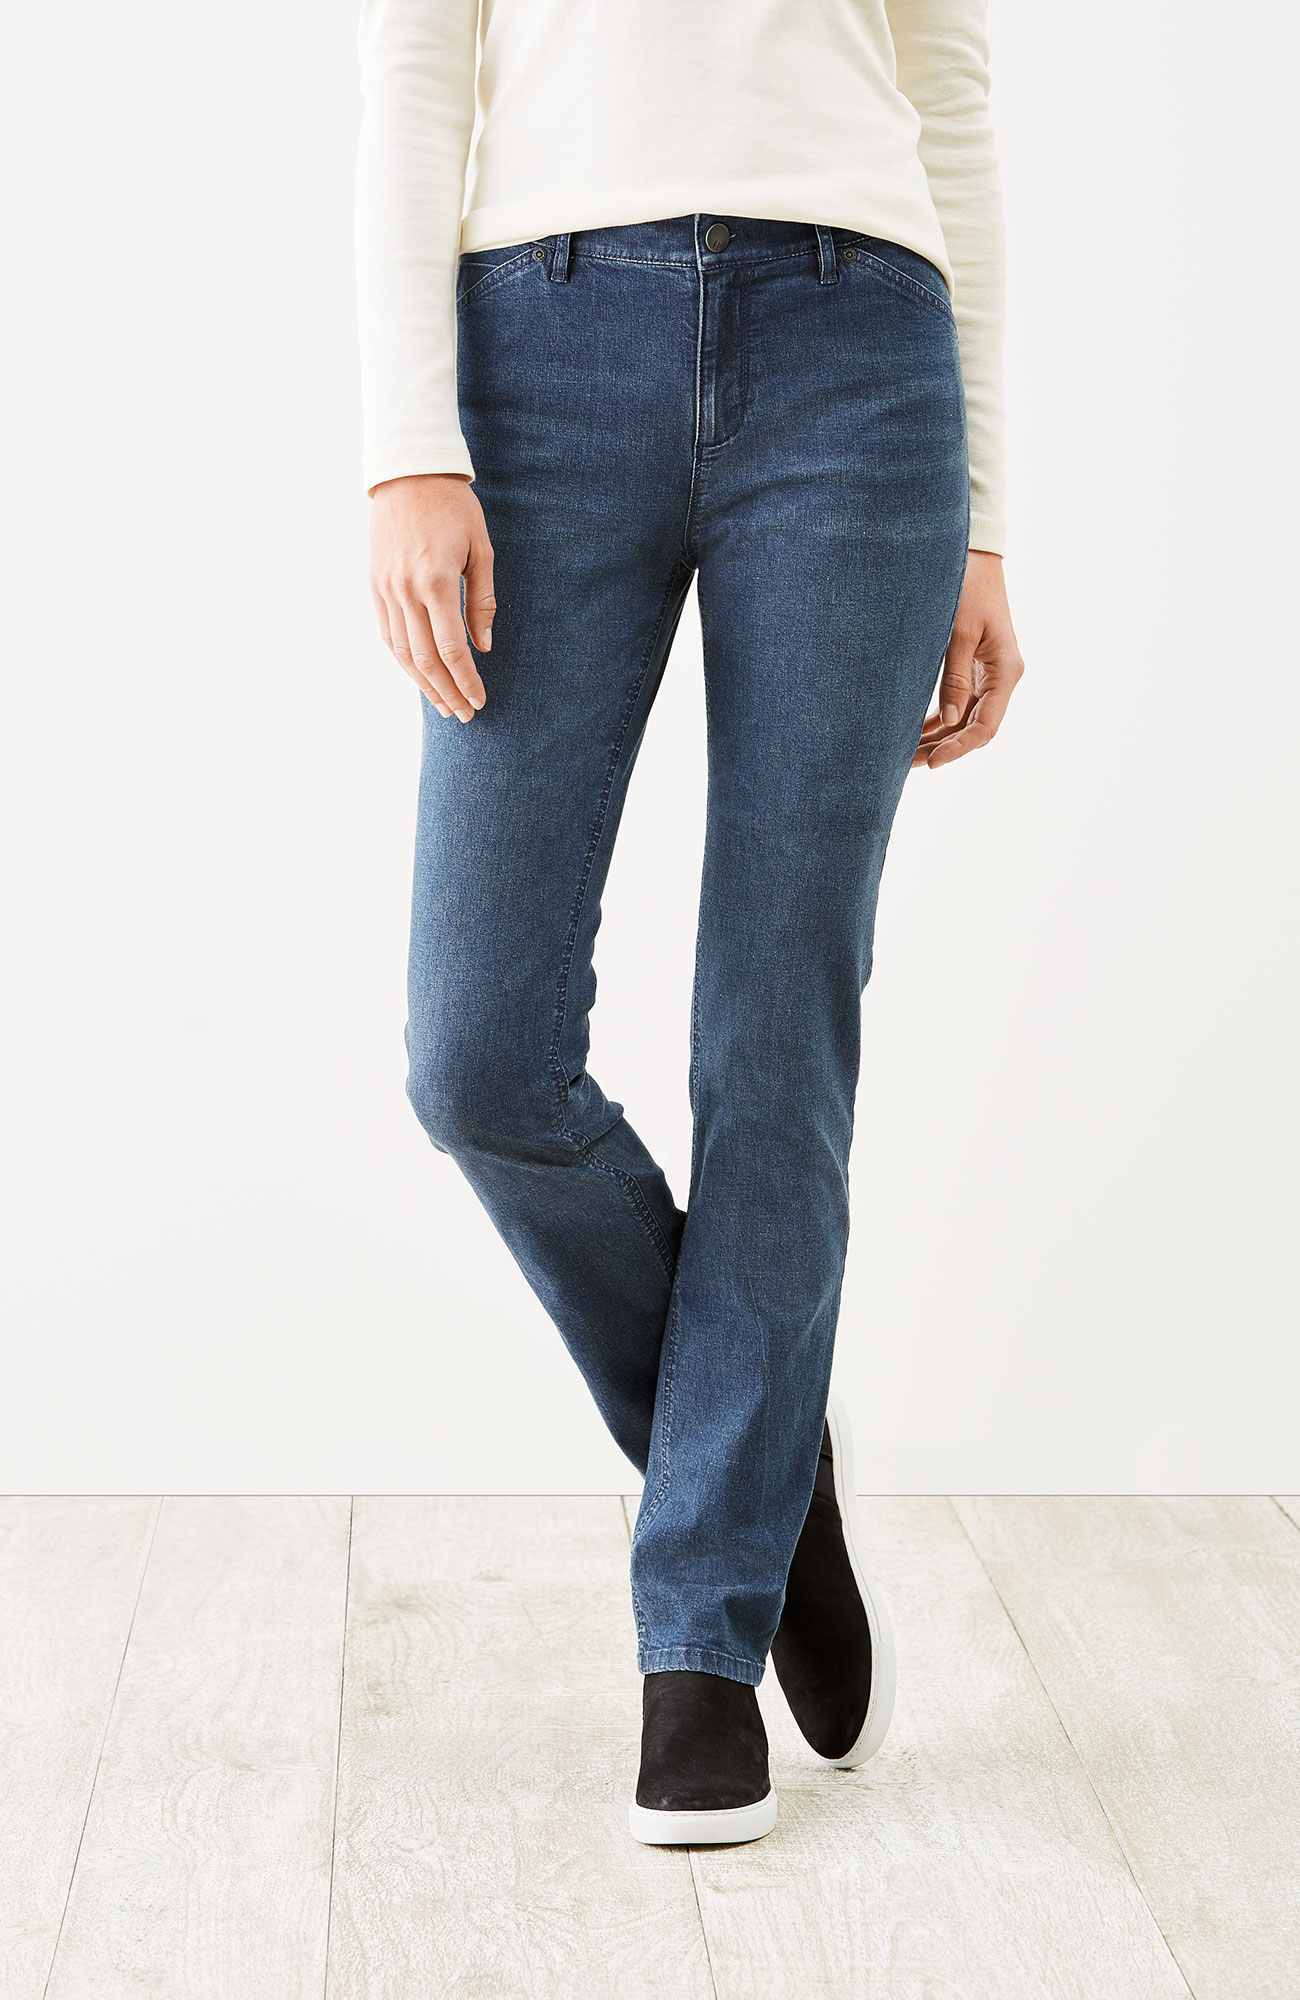 Tried & True slim-leg jeans